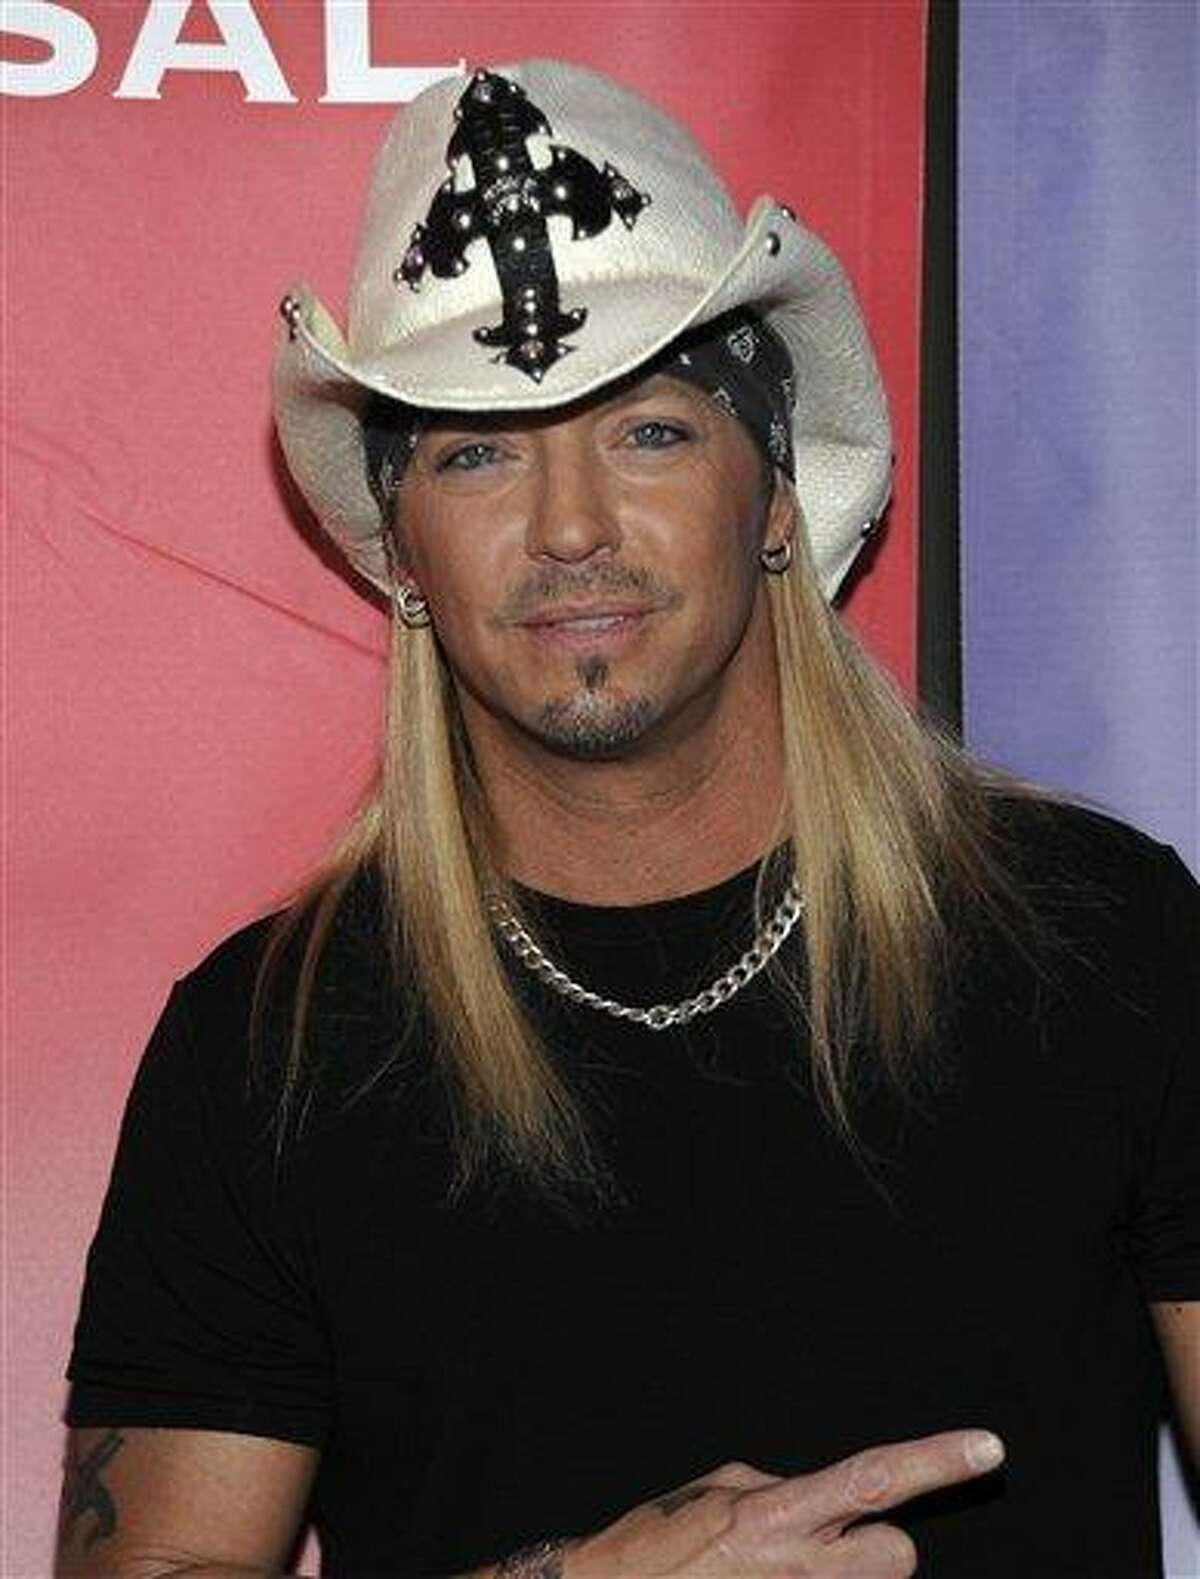 In this Jan. 10, 2010 photo Singer Bret Michaels arrives at the NBC Universal Winter 2010 press tour party in Pasadena, Calif.